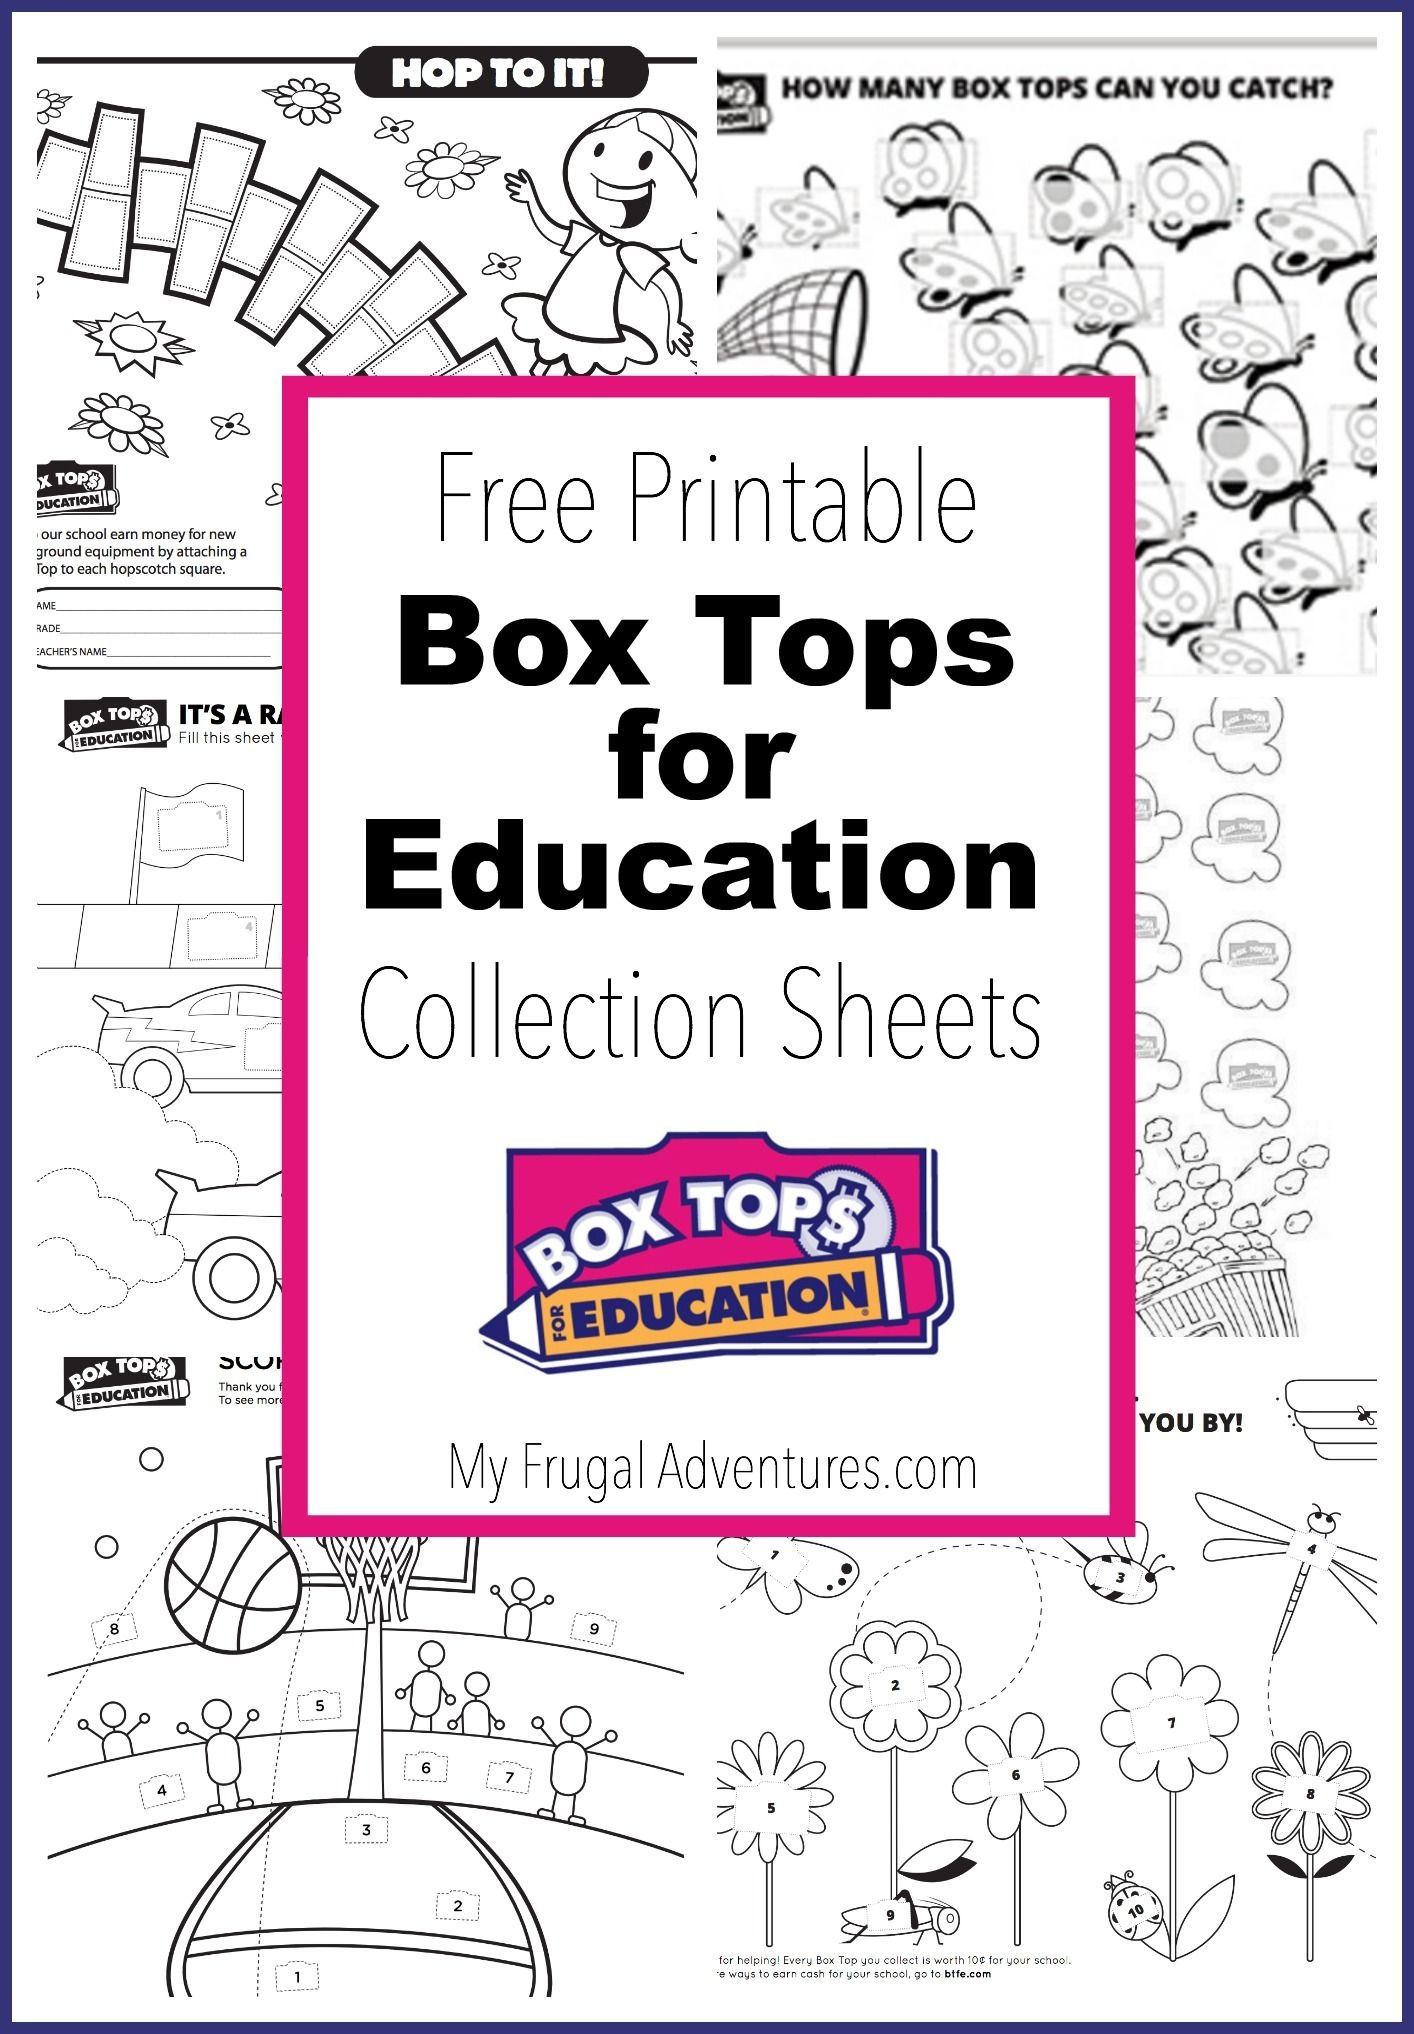 10 Printable Box Tops For Education Collection Sheets   Box Tops - Free Printable Box Tops For Education